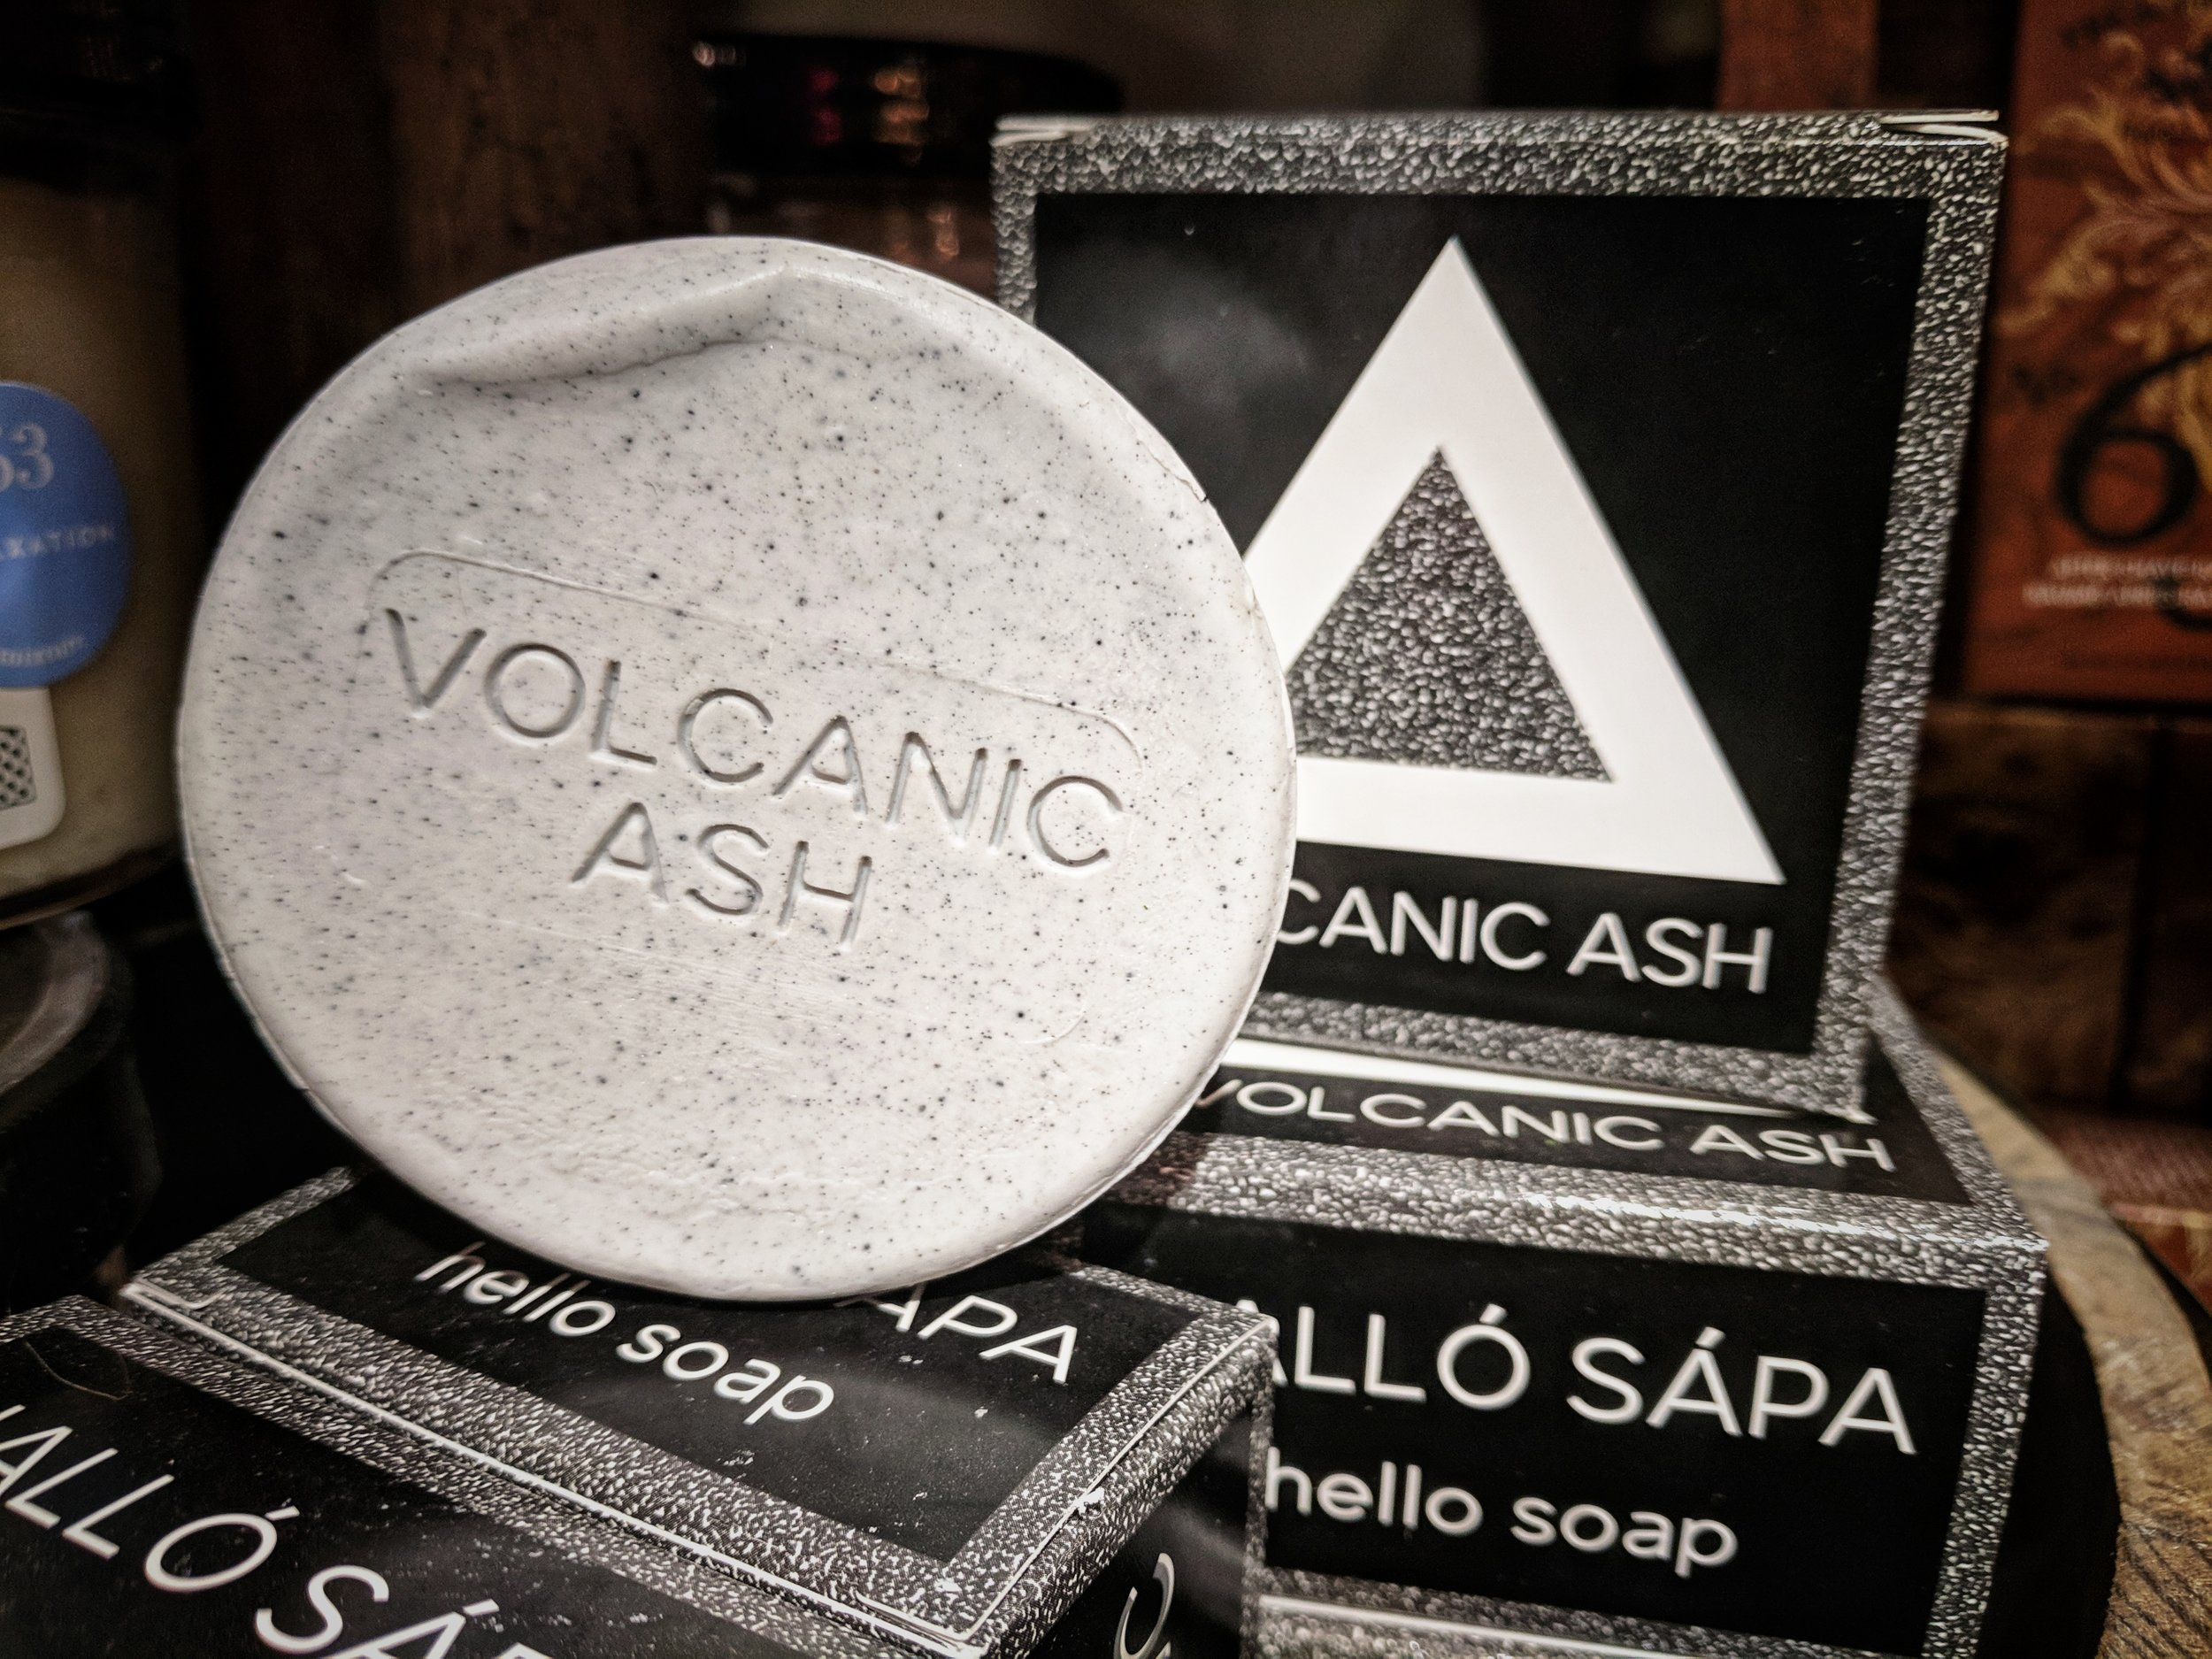 Icelandic Ash - pure, hand-harvested Volcanic Ash from Iceland's geothermal lava fields and combining it with our custom, sustainable, Rainforest Alliance Certified™ soap base made domestically in the USA. Icelandic Volcanic Ash, known as